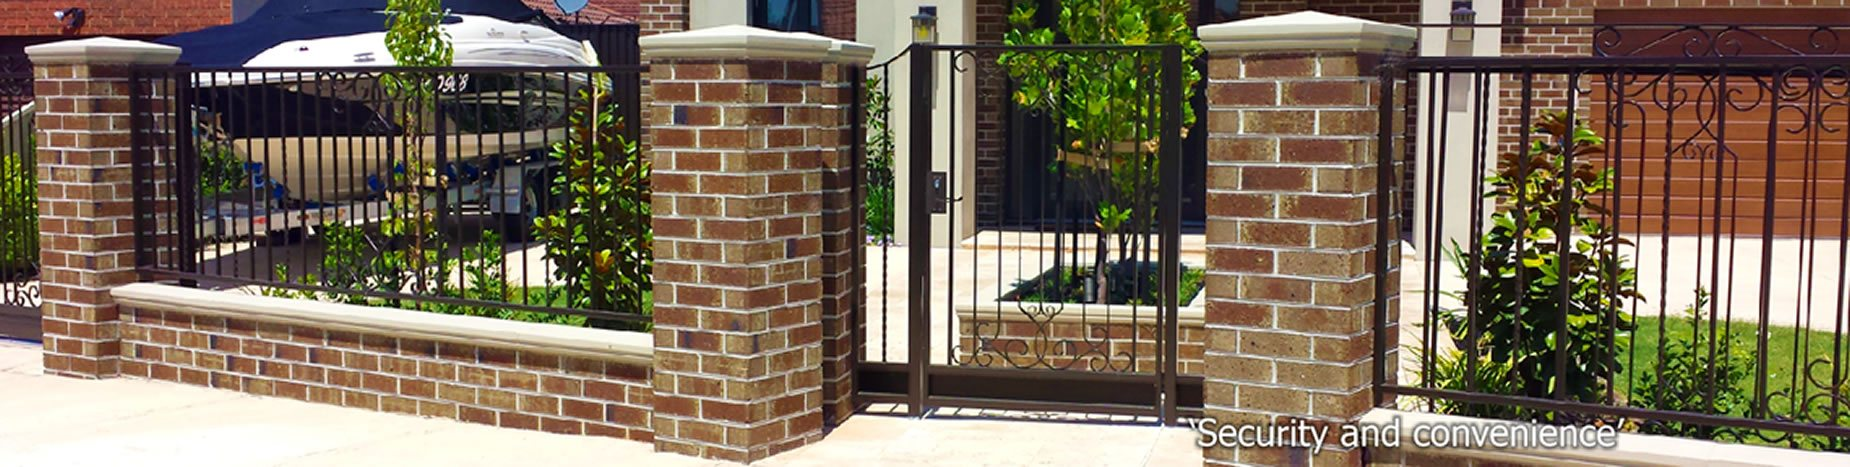 Shieldguard Security Doors - Security and Convenience